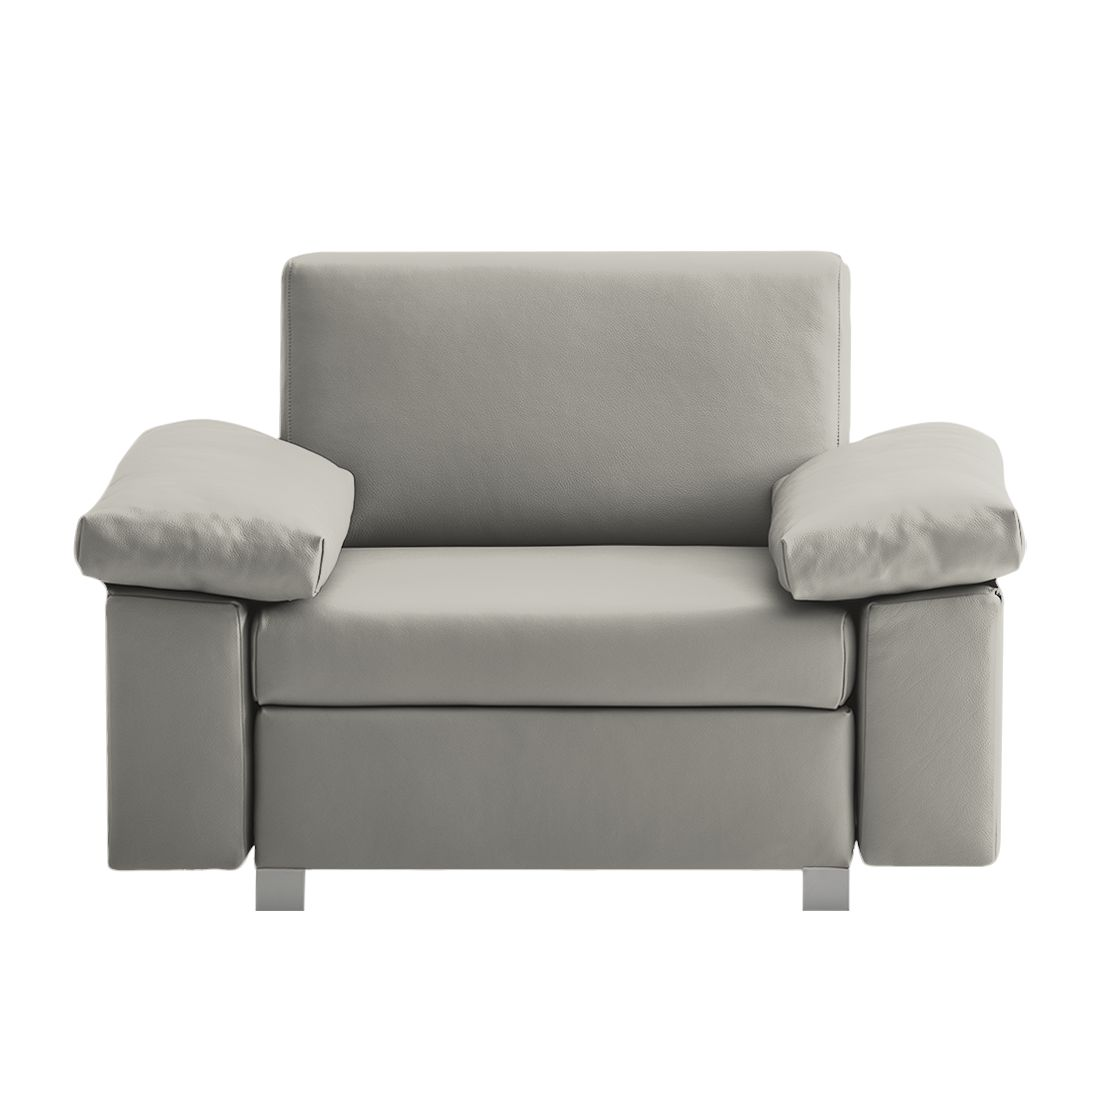 Fauteuil convertible Plaza - Cuir véritable - Gris - Types d'accoudoir rabattable, chillout by Franz